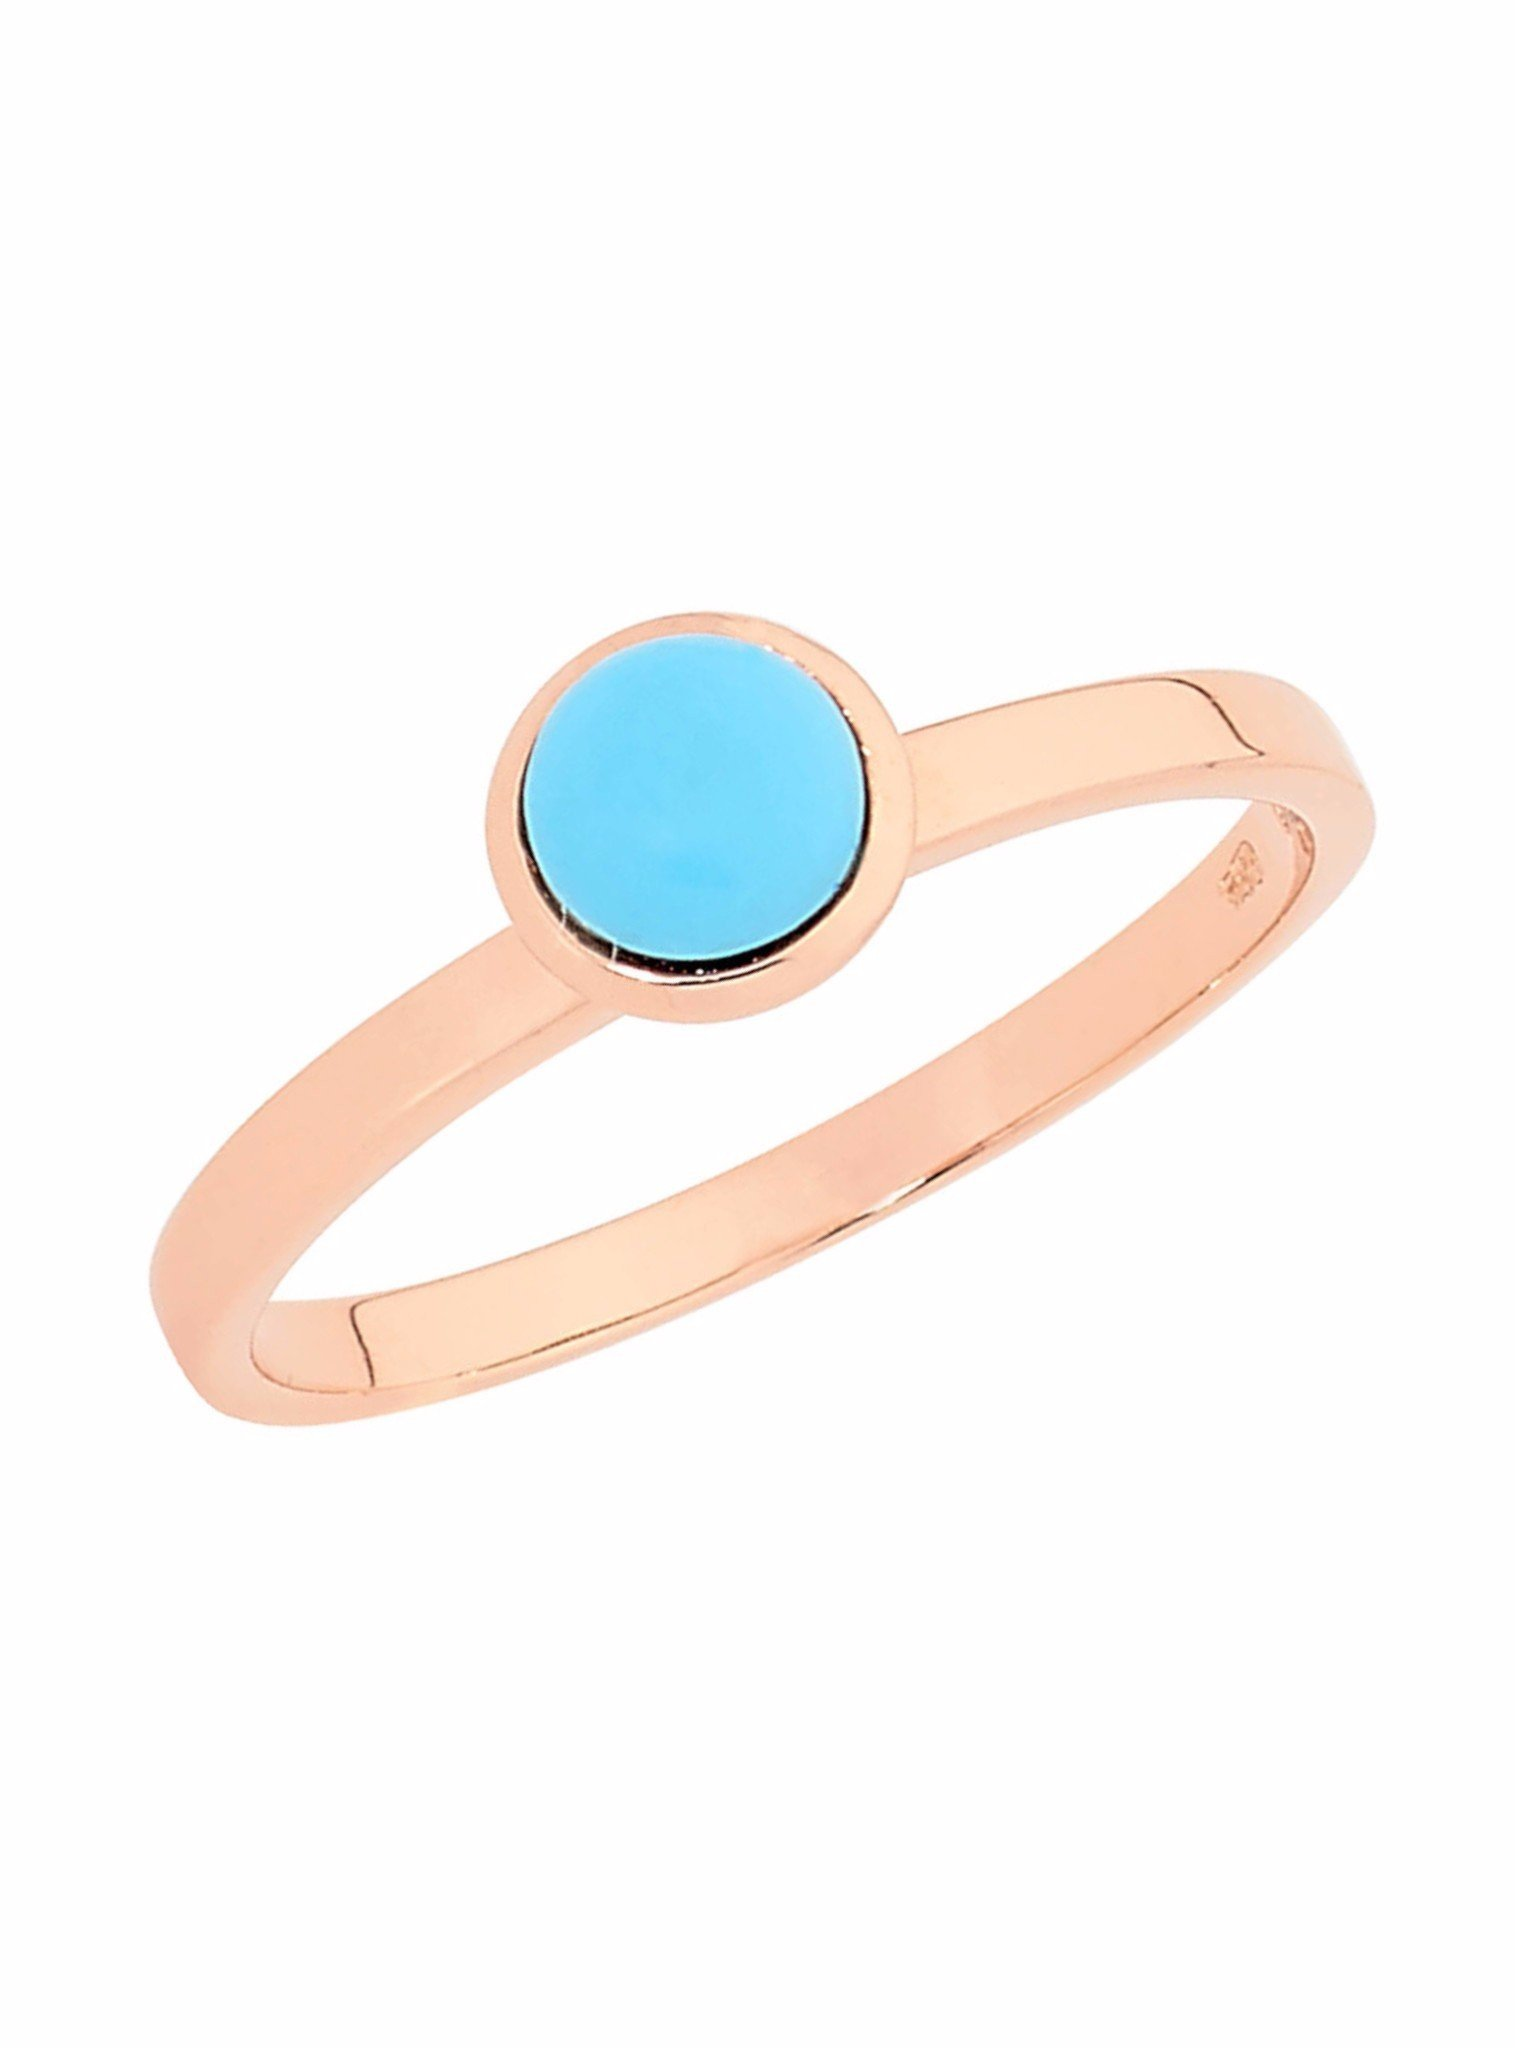 Turquoise Stacking Ring in 14k Rose Gold Plated Silver